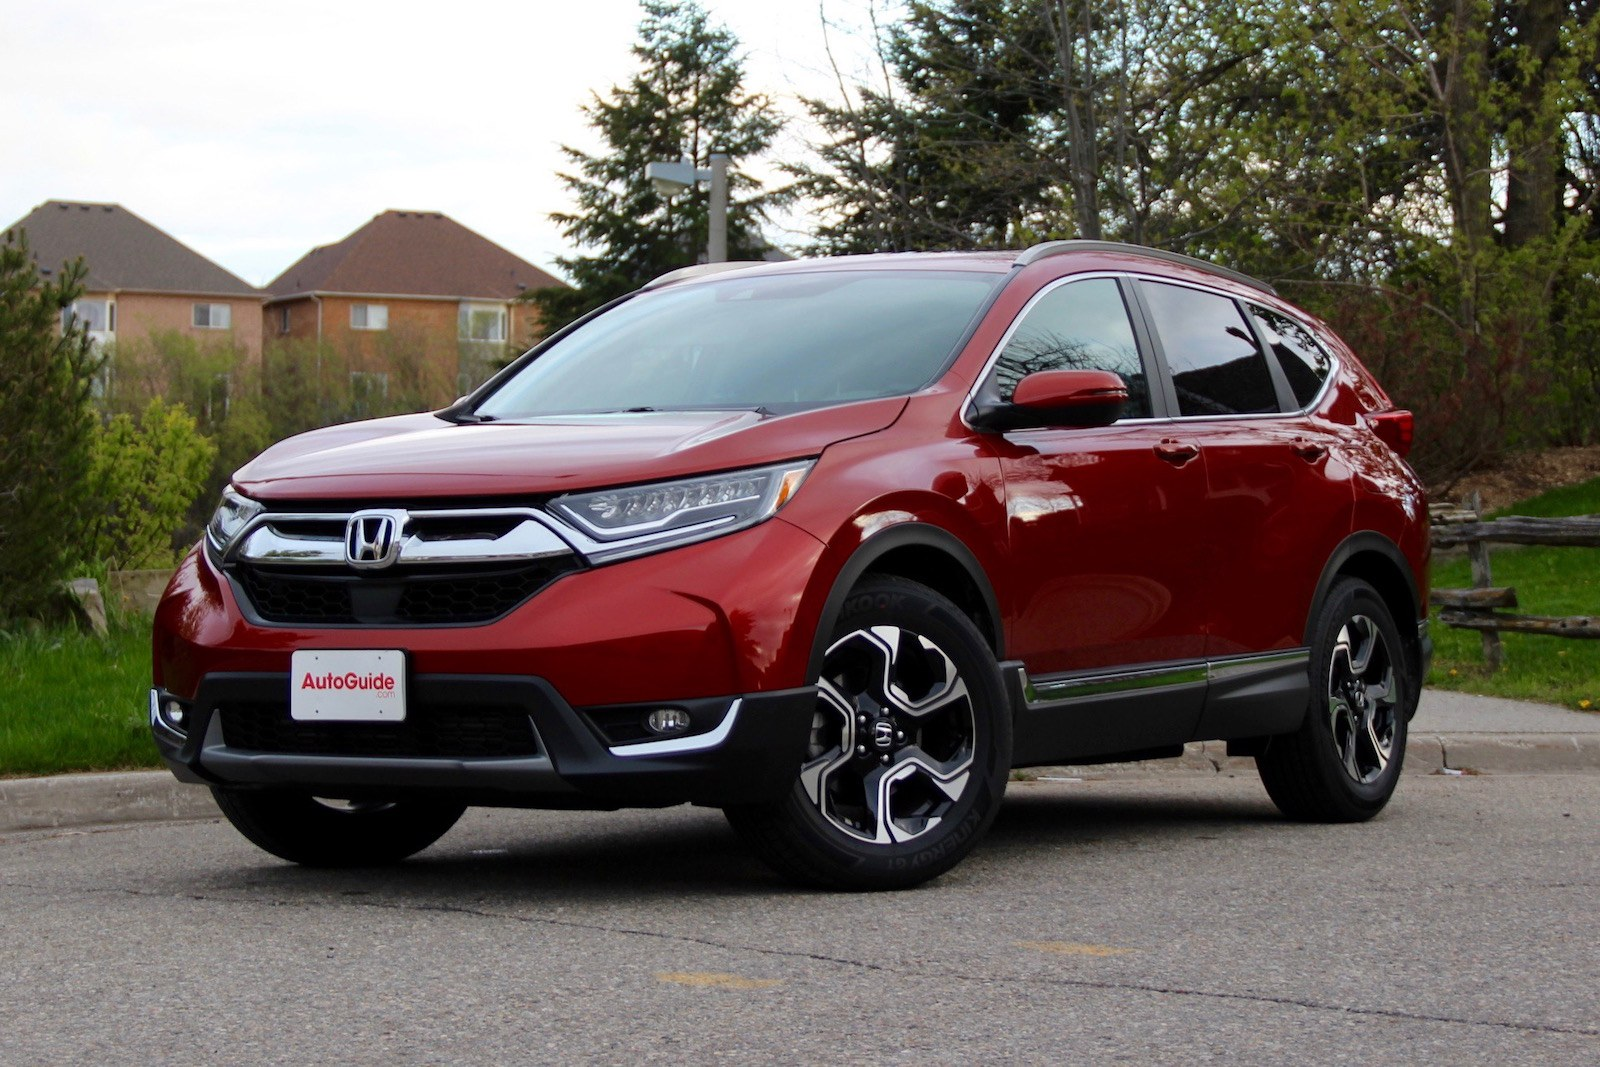 4 Crossover Comparison: 2018 Honda CR-V vs Nissan Rogue vs ...